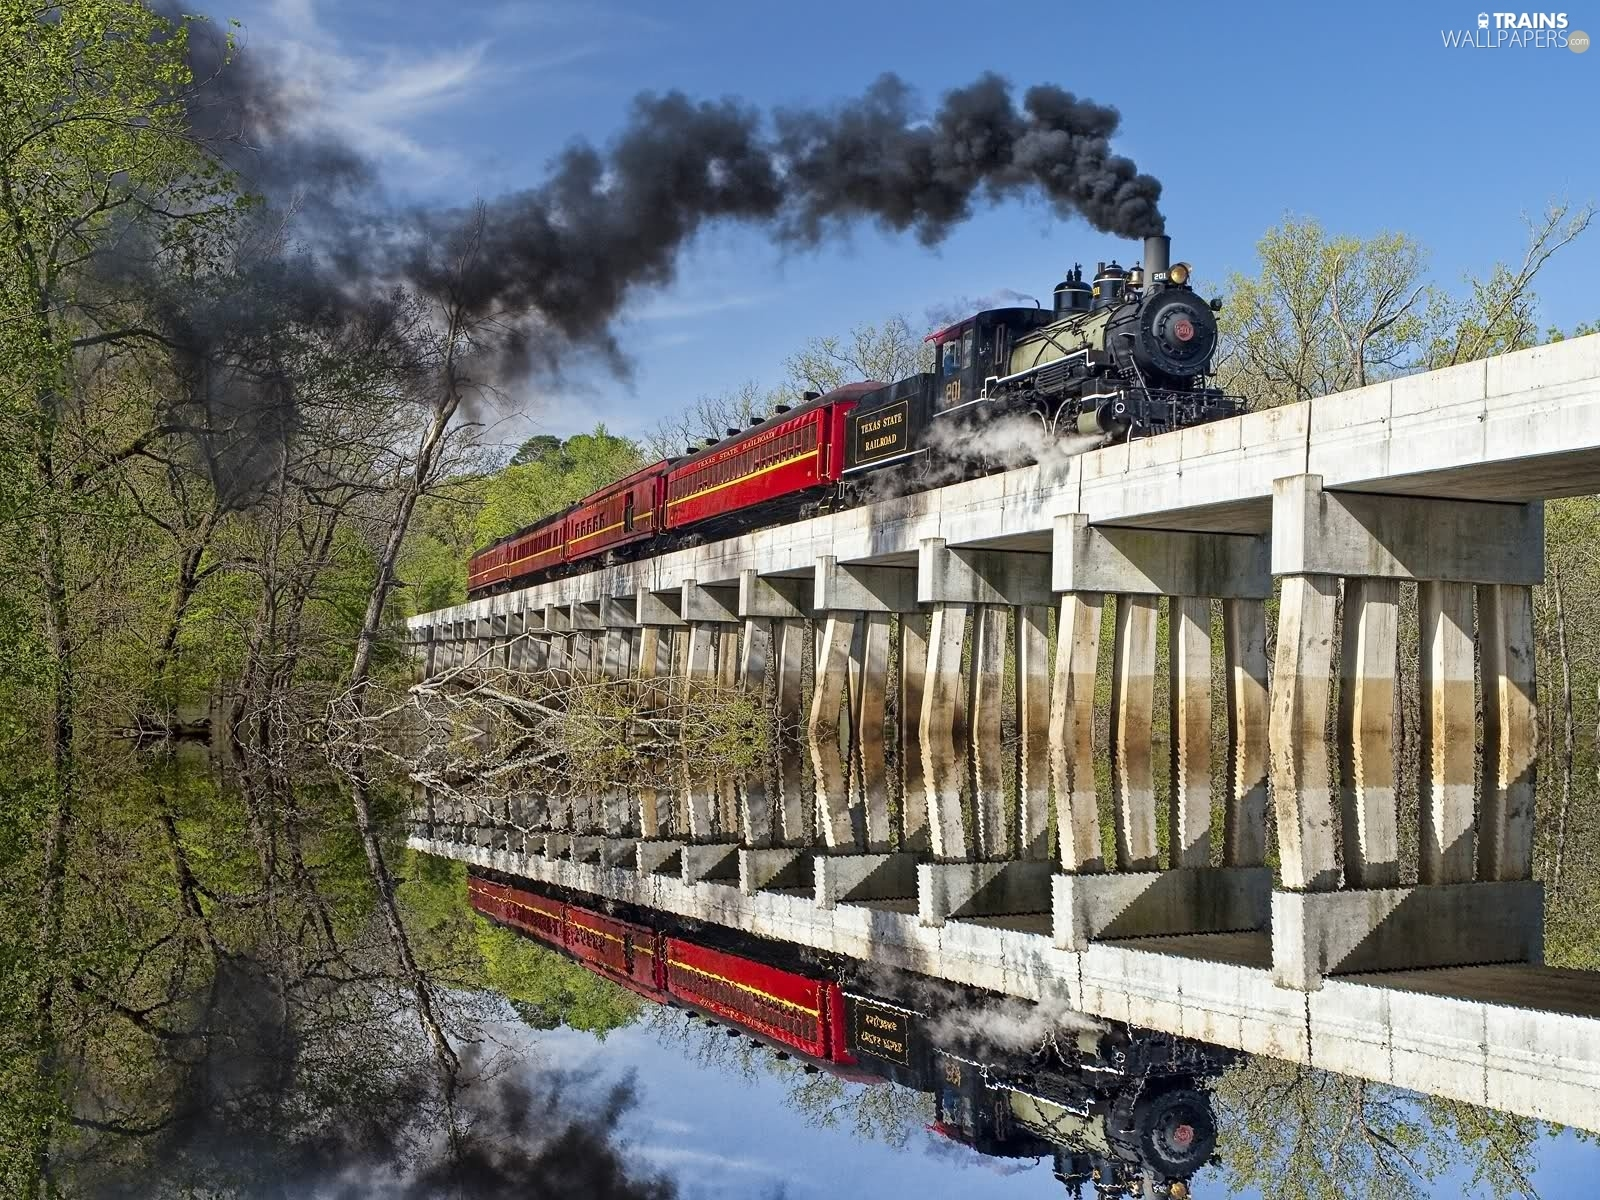 locomotive, reflection, Mirror, bridge